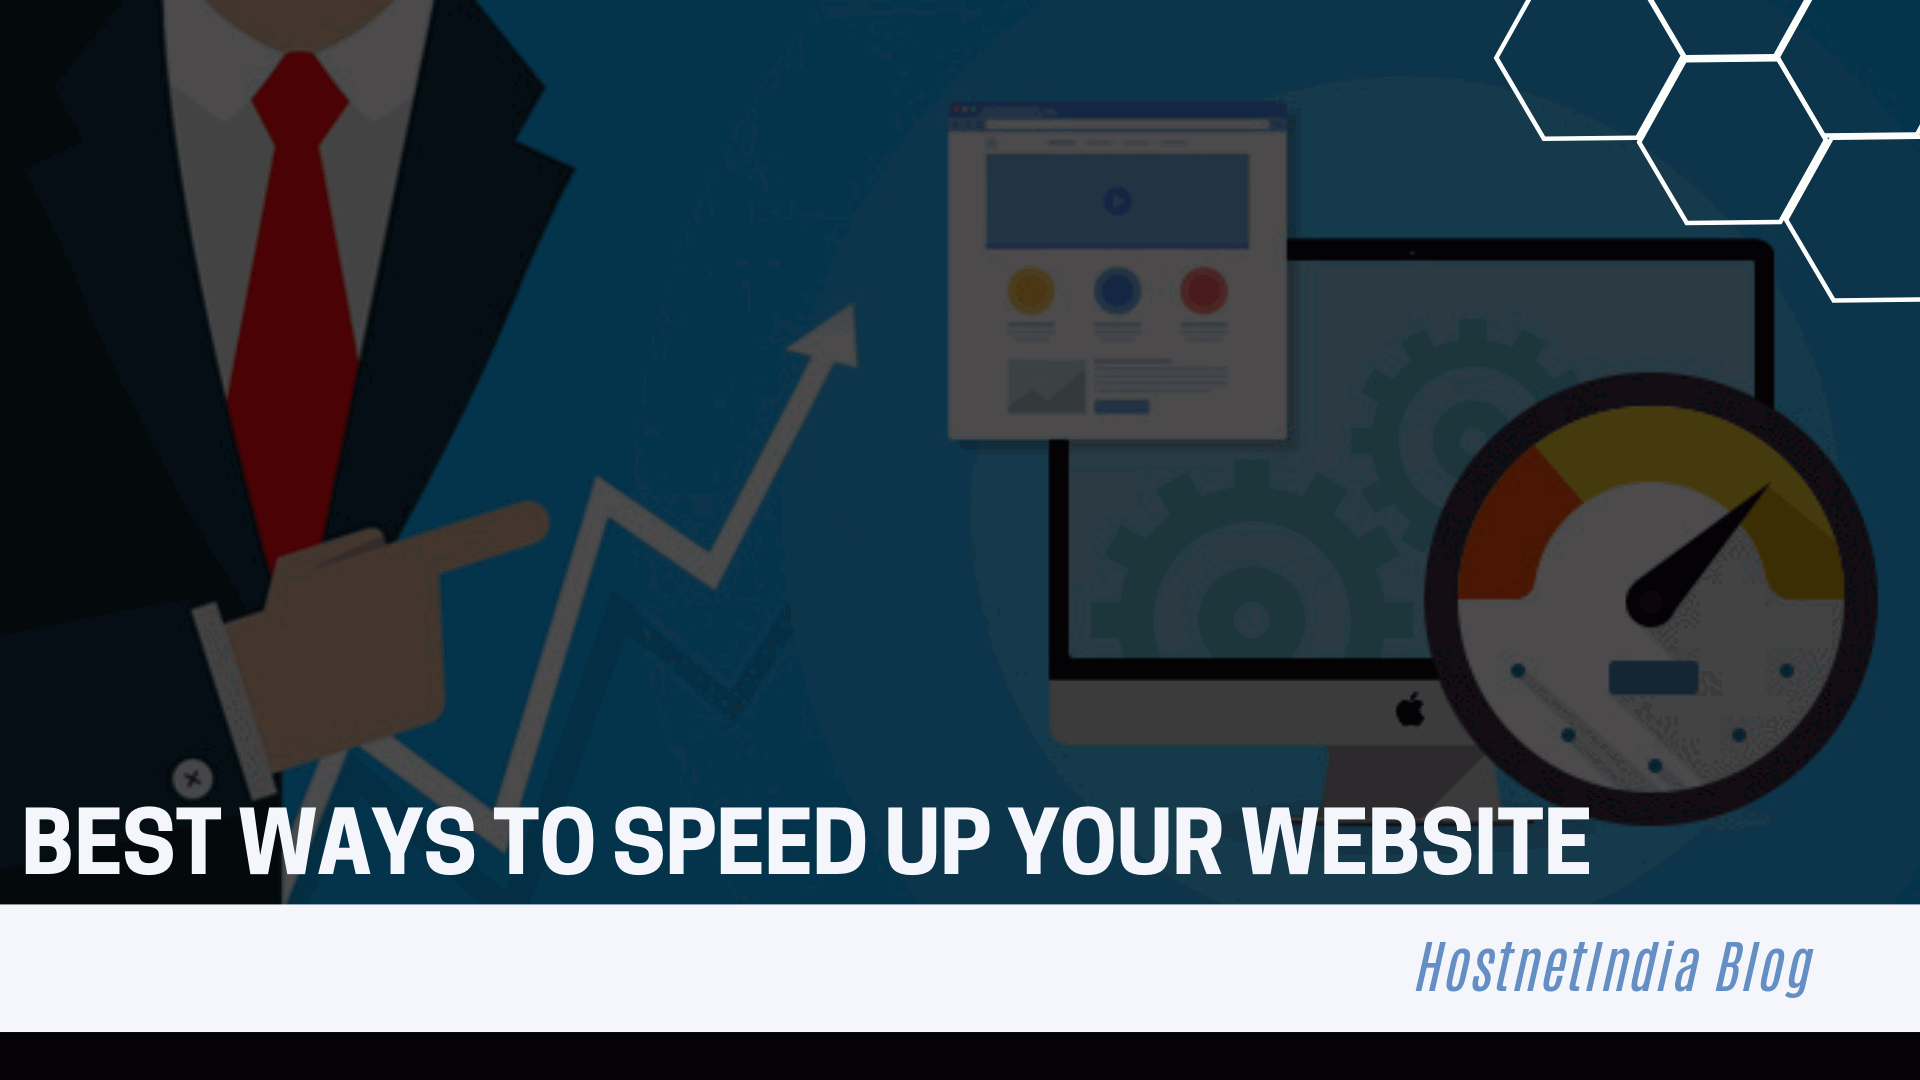 Best ways to speed up your website